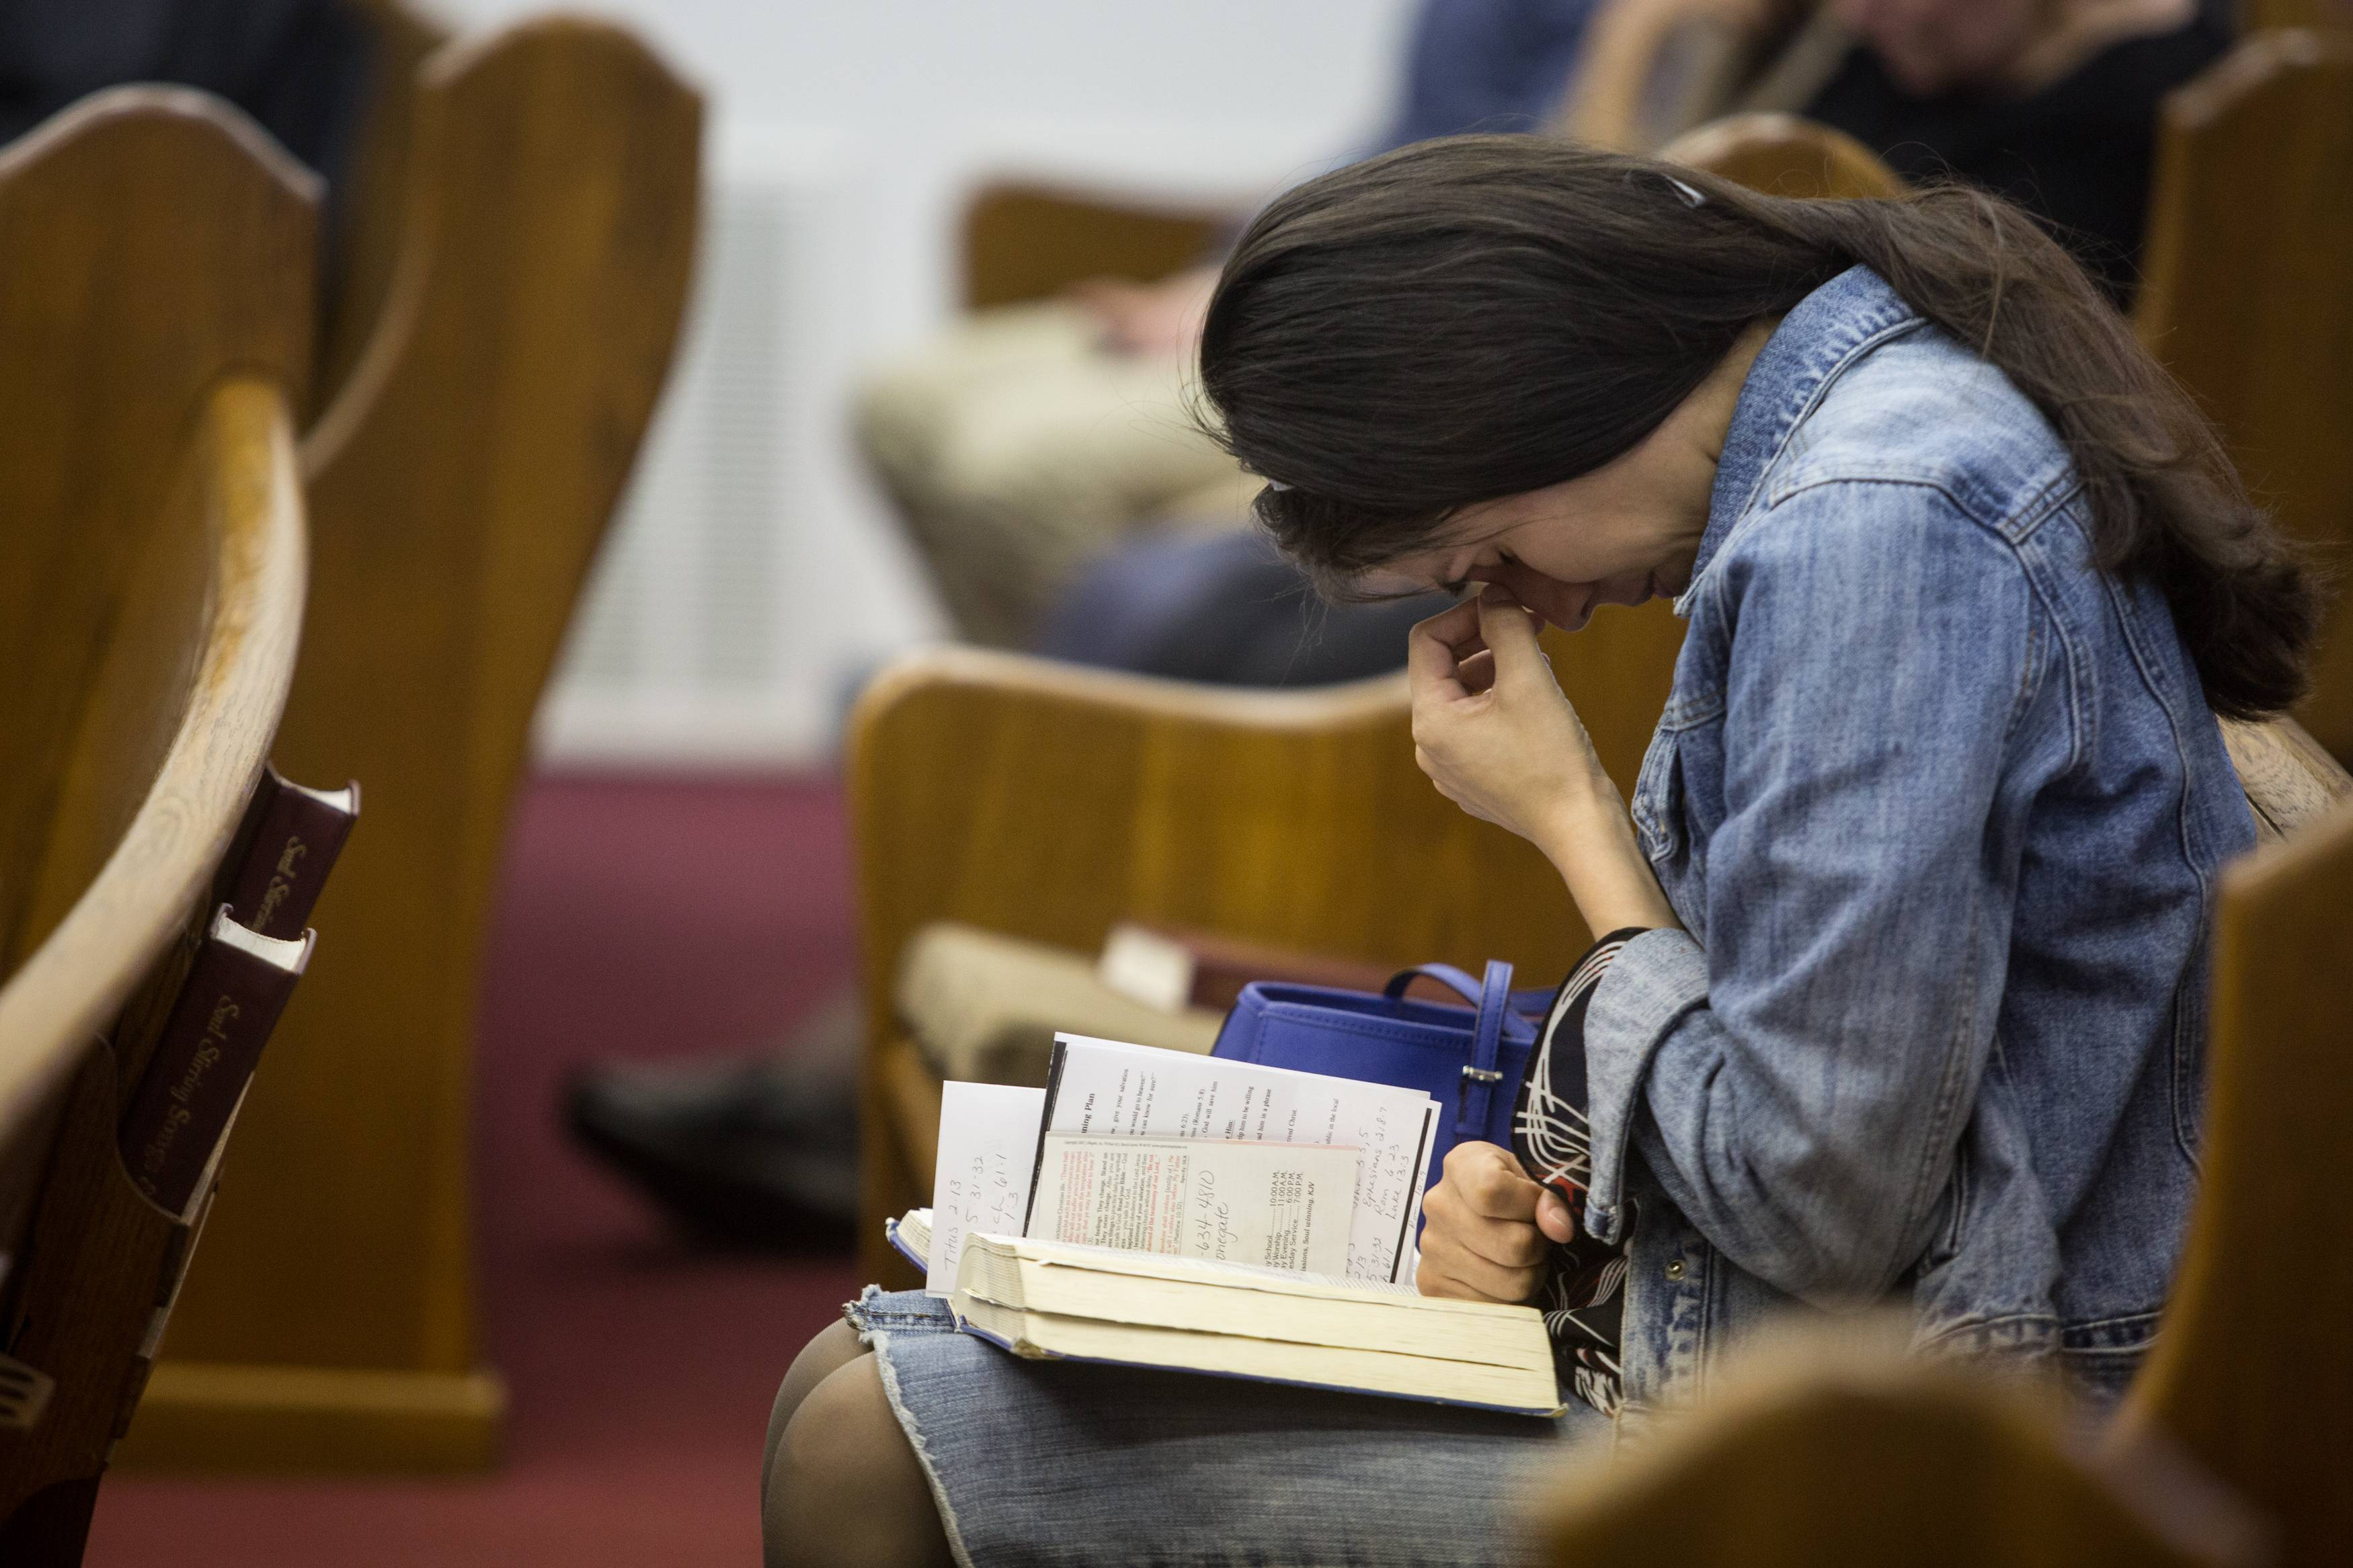 Kathy Abad, a military wife, prays for the victims and families affected by the Fort Hood shooting during a memorial service at the Tabernacle Baptist Church on Sunday in Killeen, Texas.